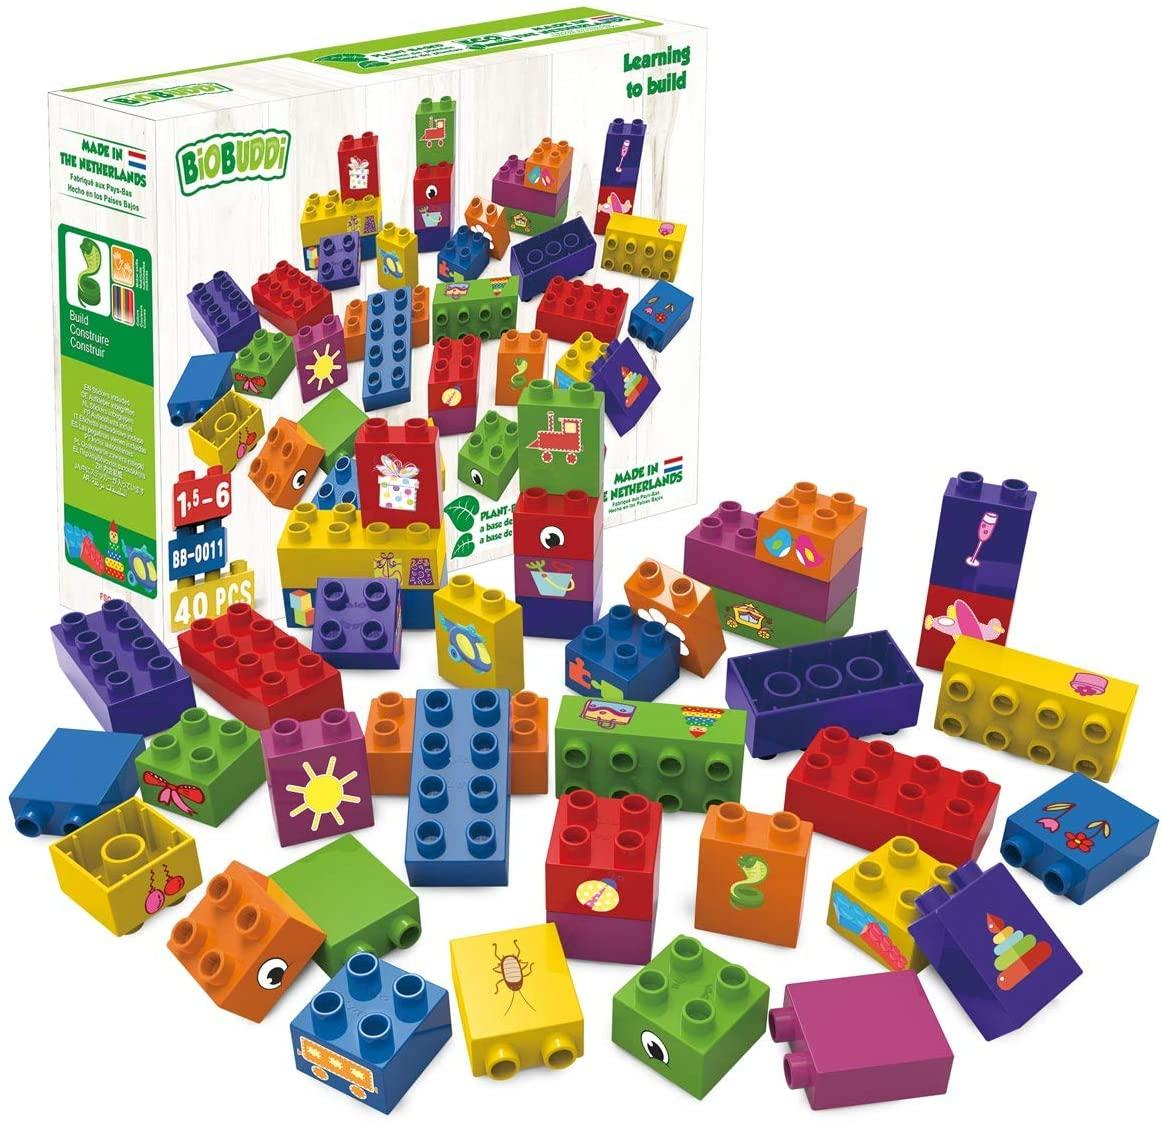 40 Eco-friendly, colourful educational building blocks for young children.